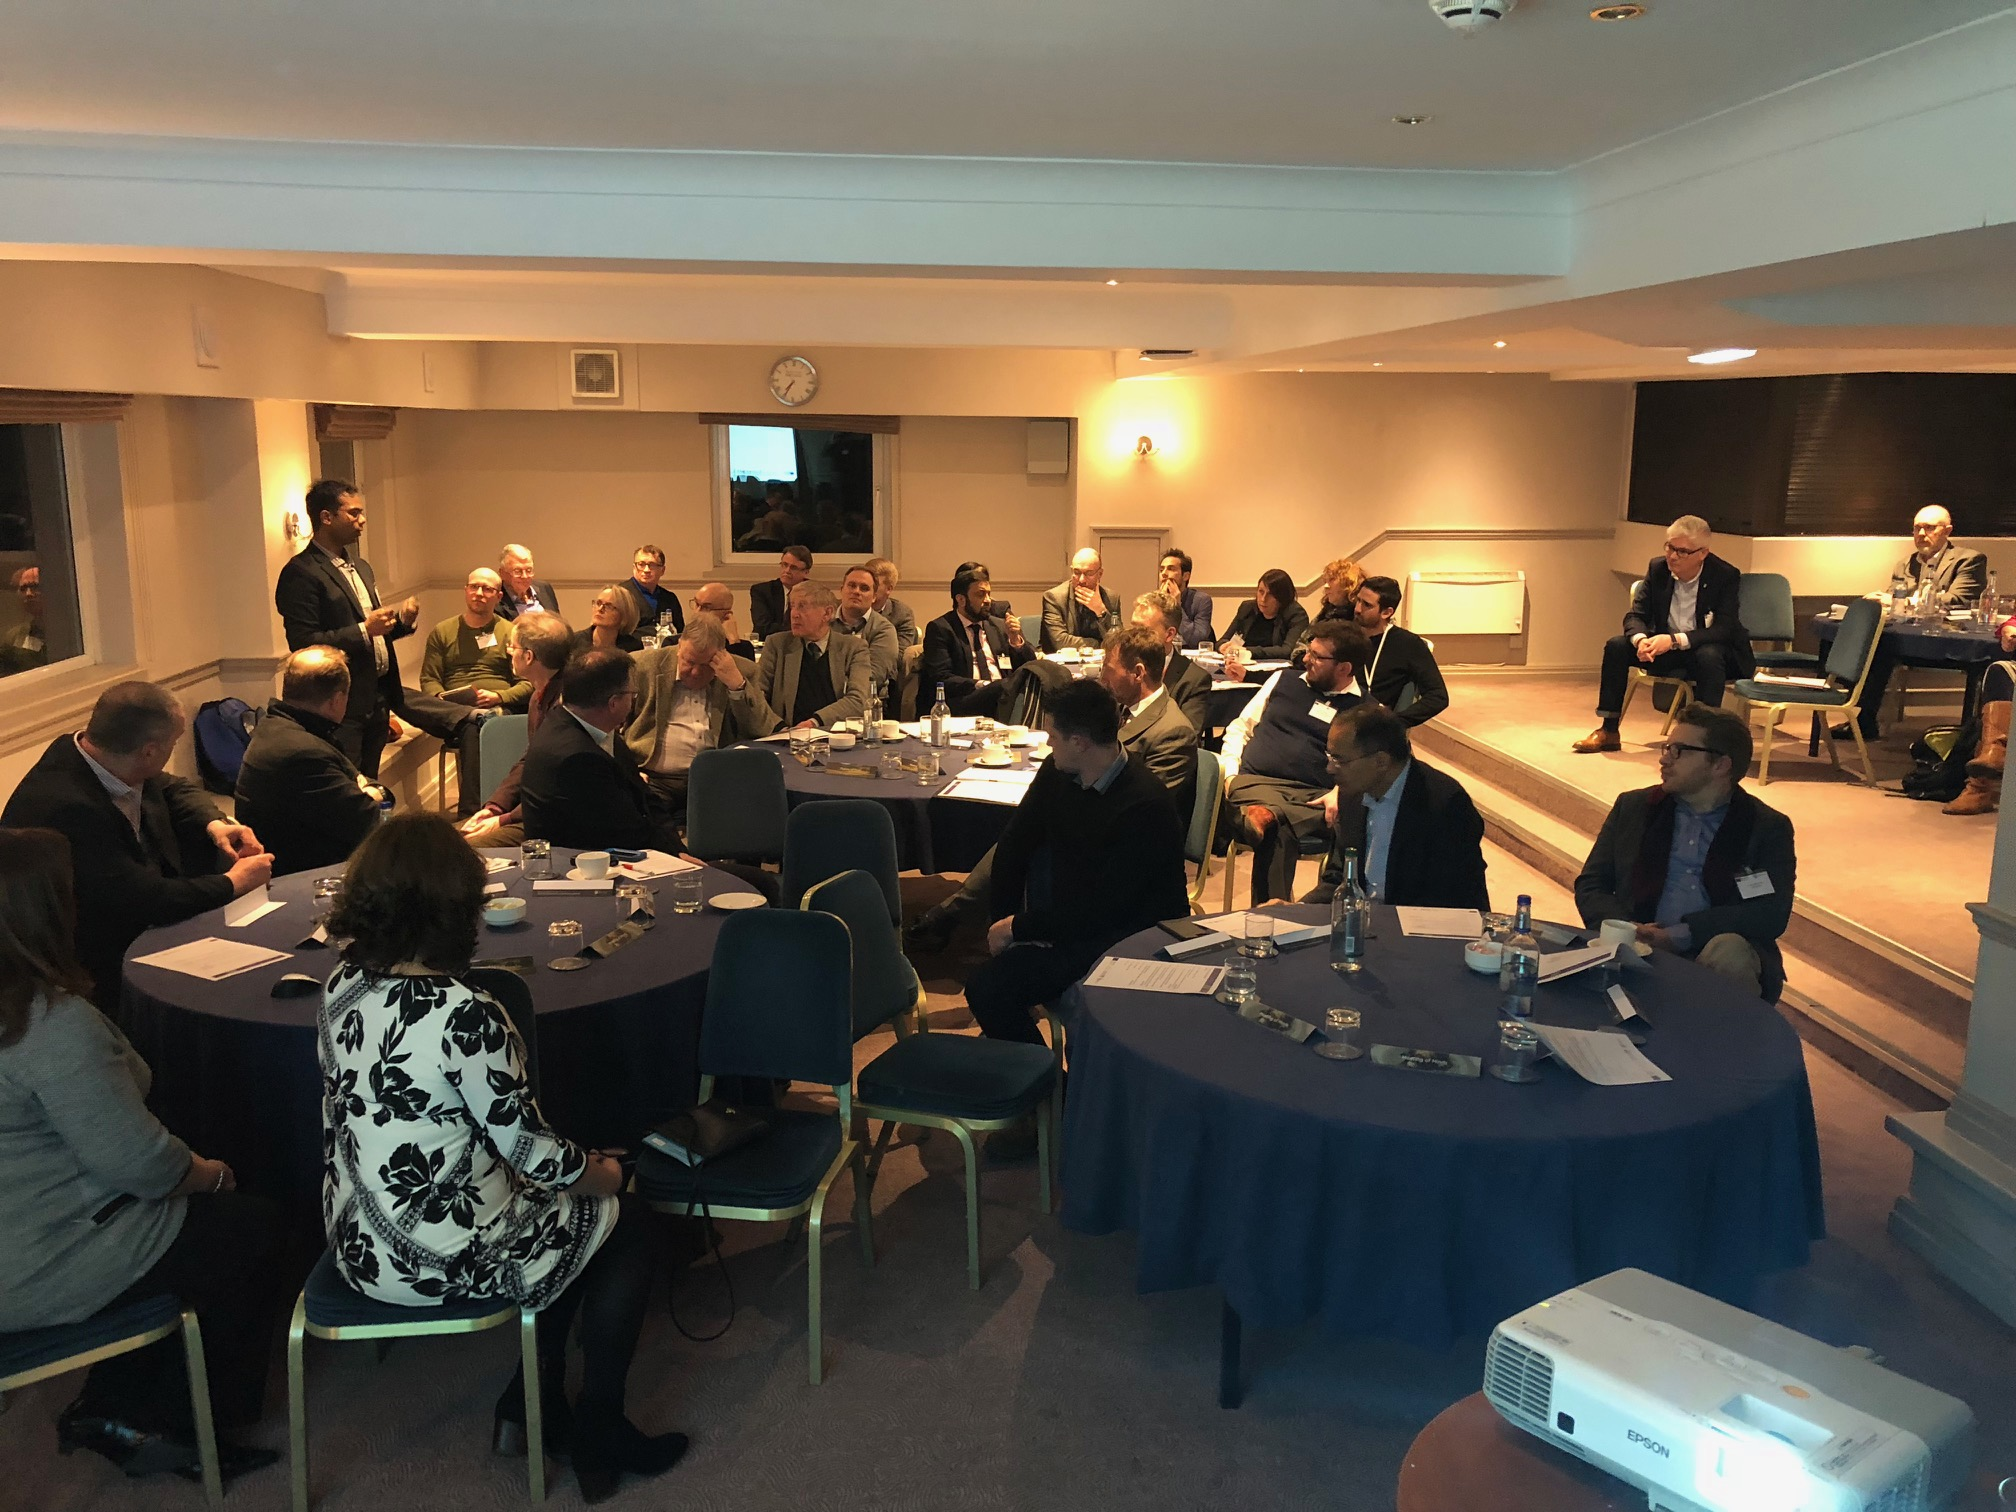 NHS Roundtable Event in Lancashire